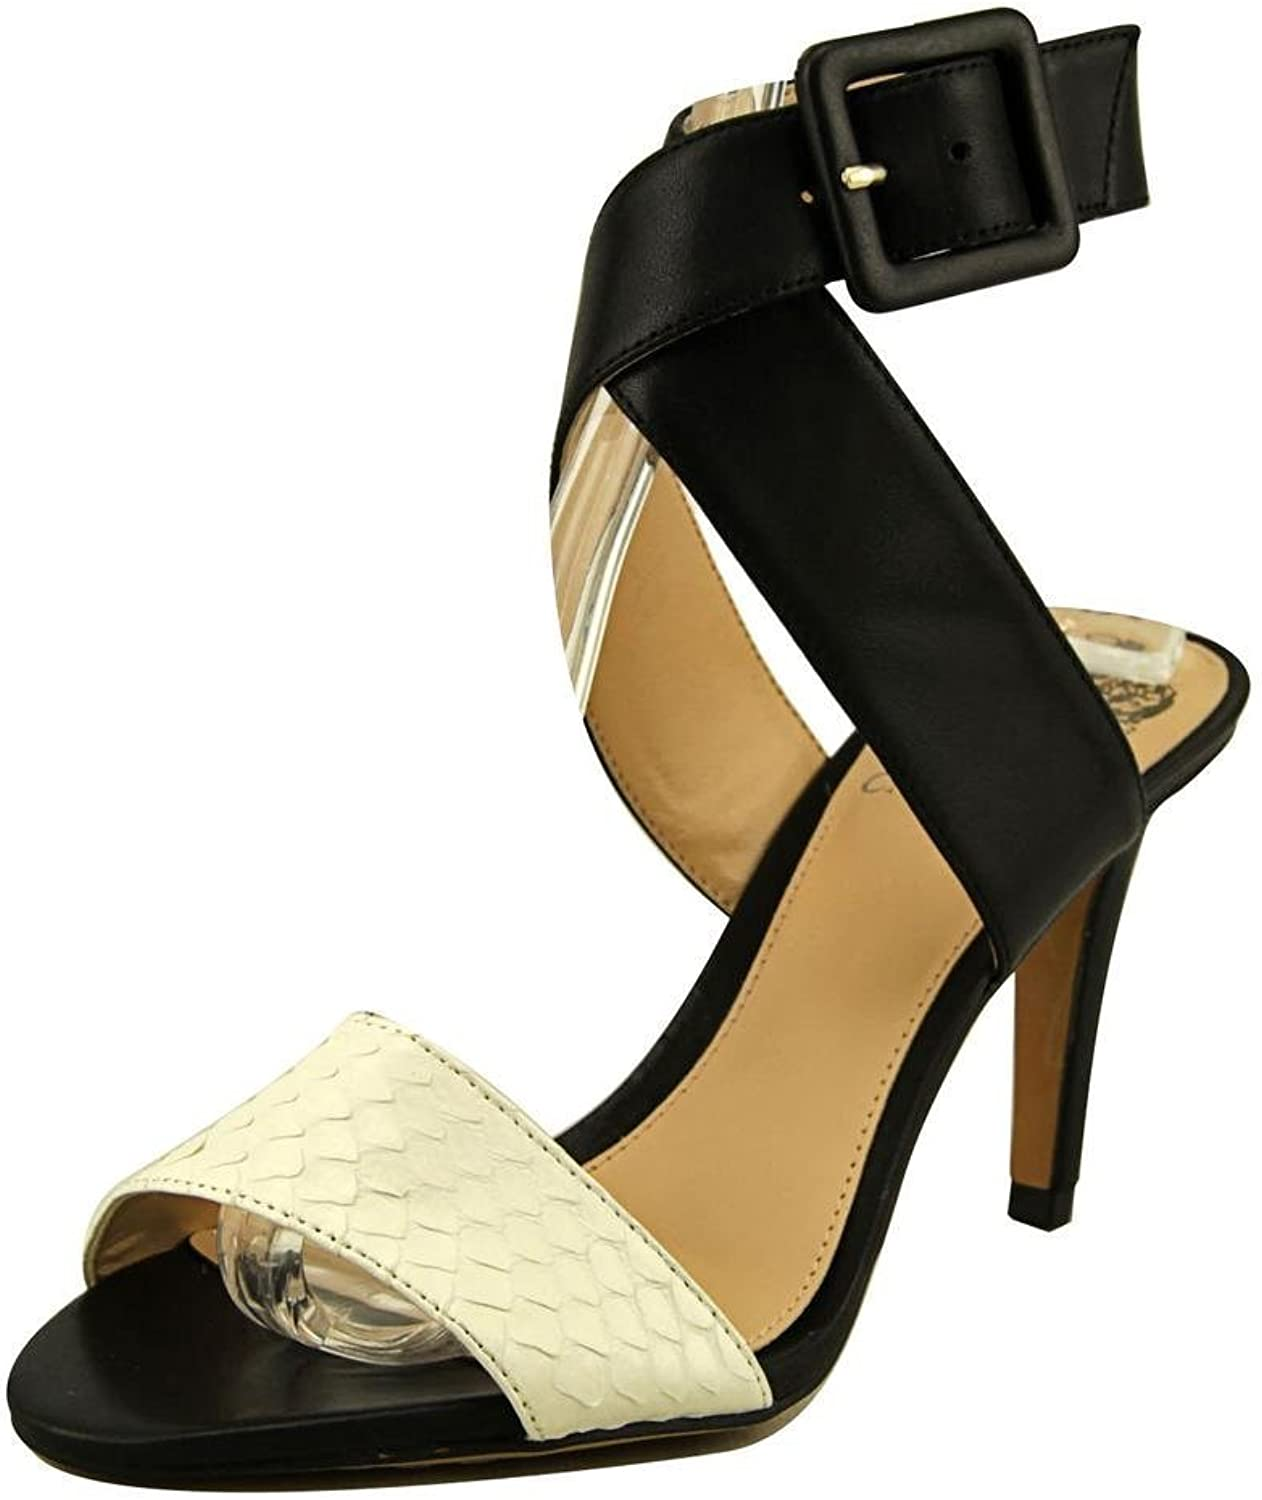 Vince Camuto Casara Women US 10 Black Open Toe Sandals